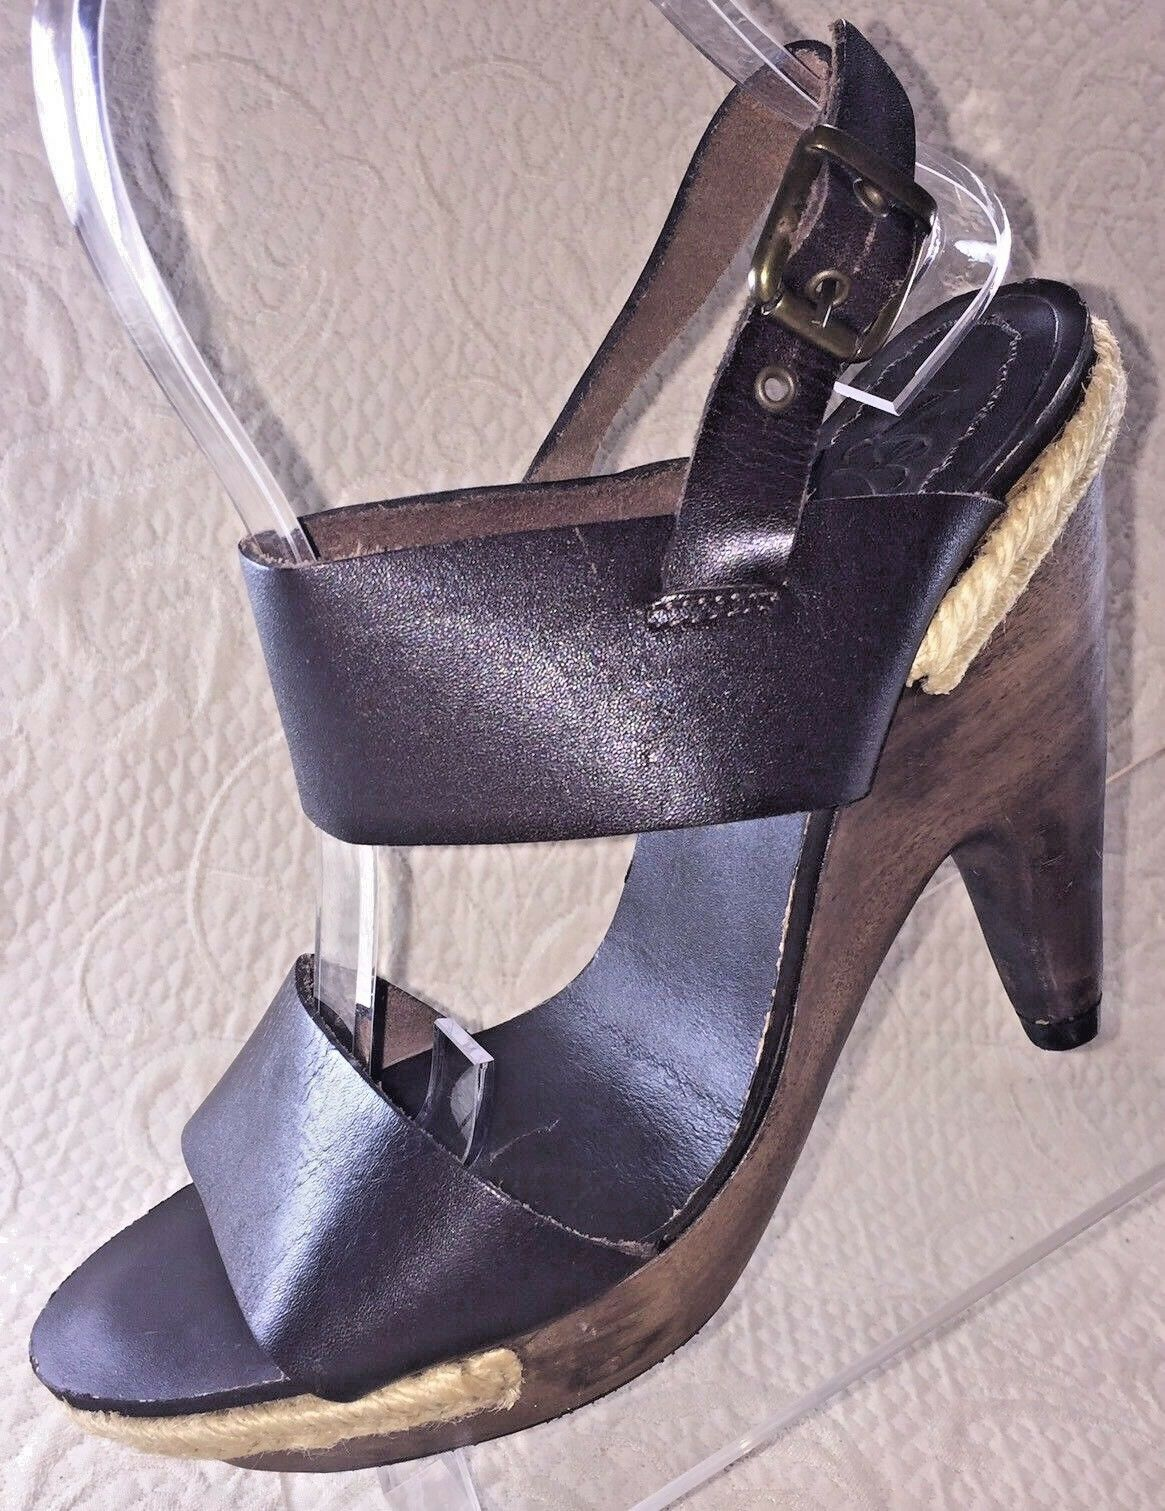 ZARA ZB Women 36 US 6 Brown Leather Wooden Ankle Strap Wedge Heel Sandal shoes